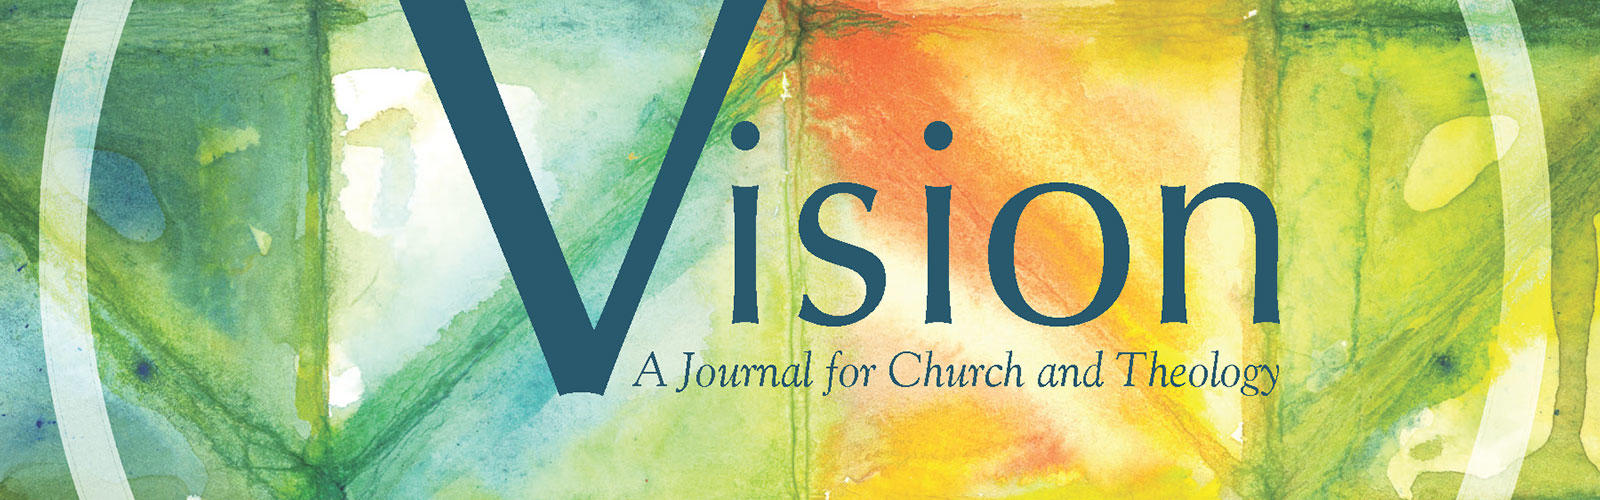 Vision: A Journal for Church and Theology banner